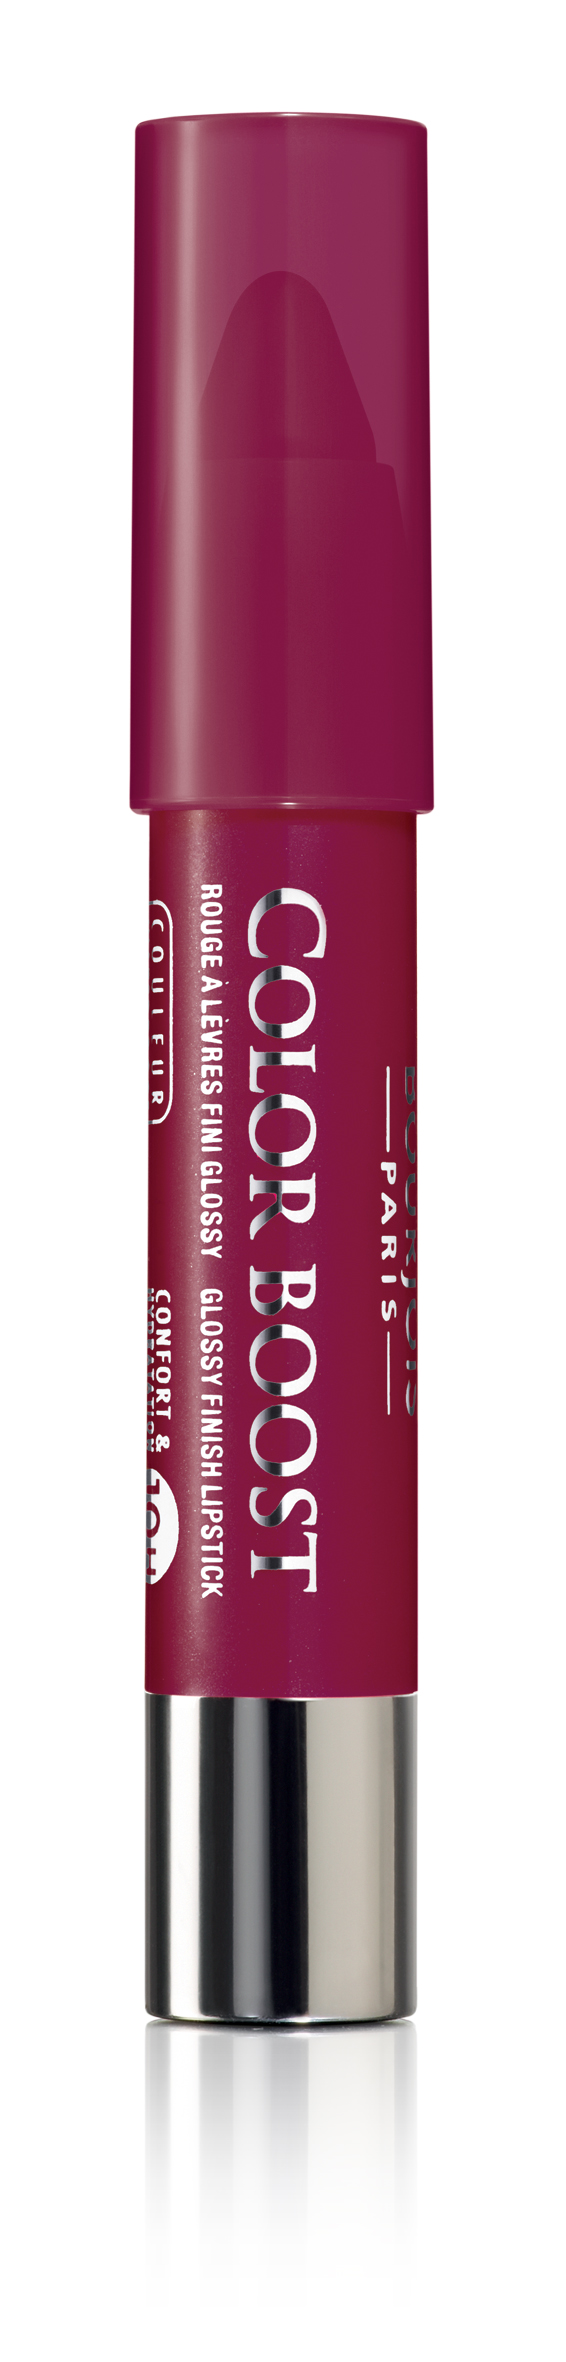 {02}Color_Boost_Plum_Russian{N}{E}_9,99